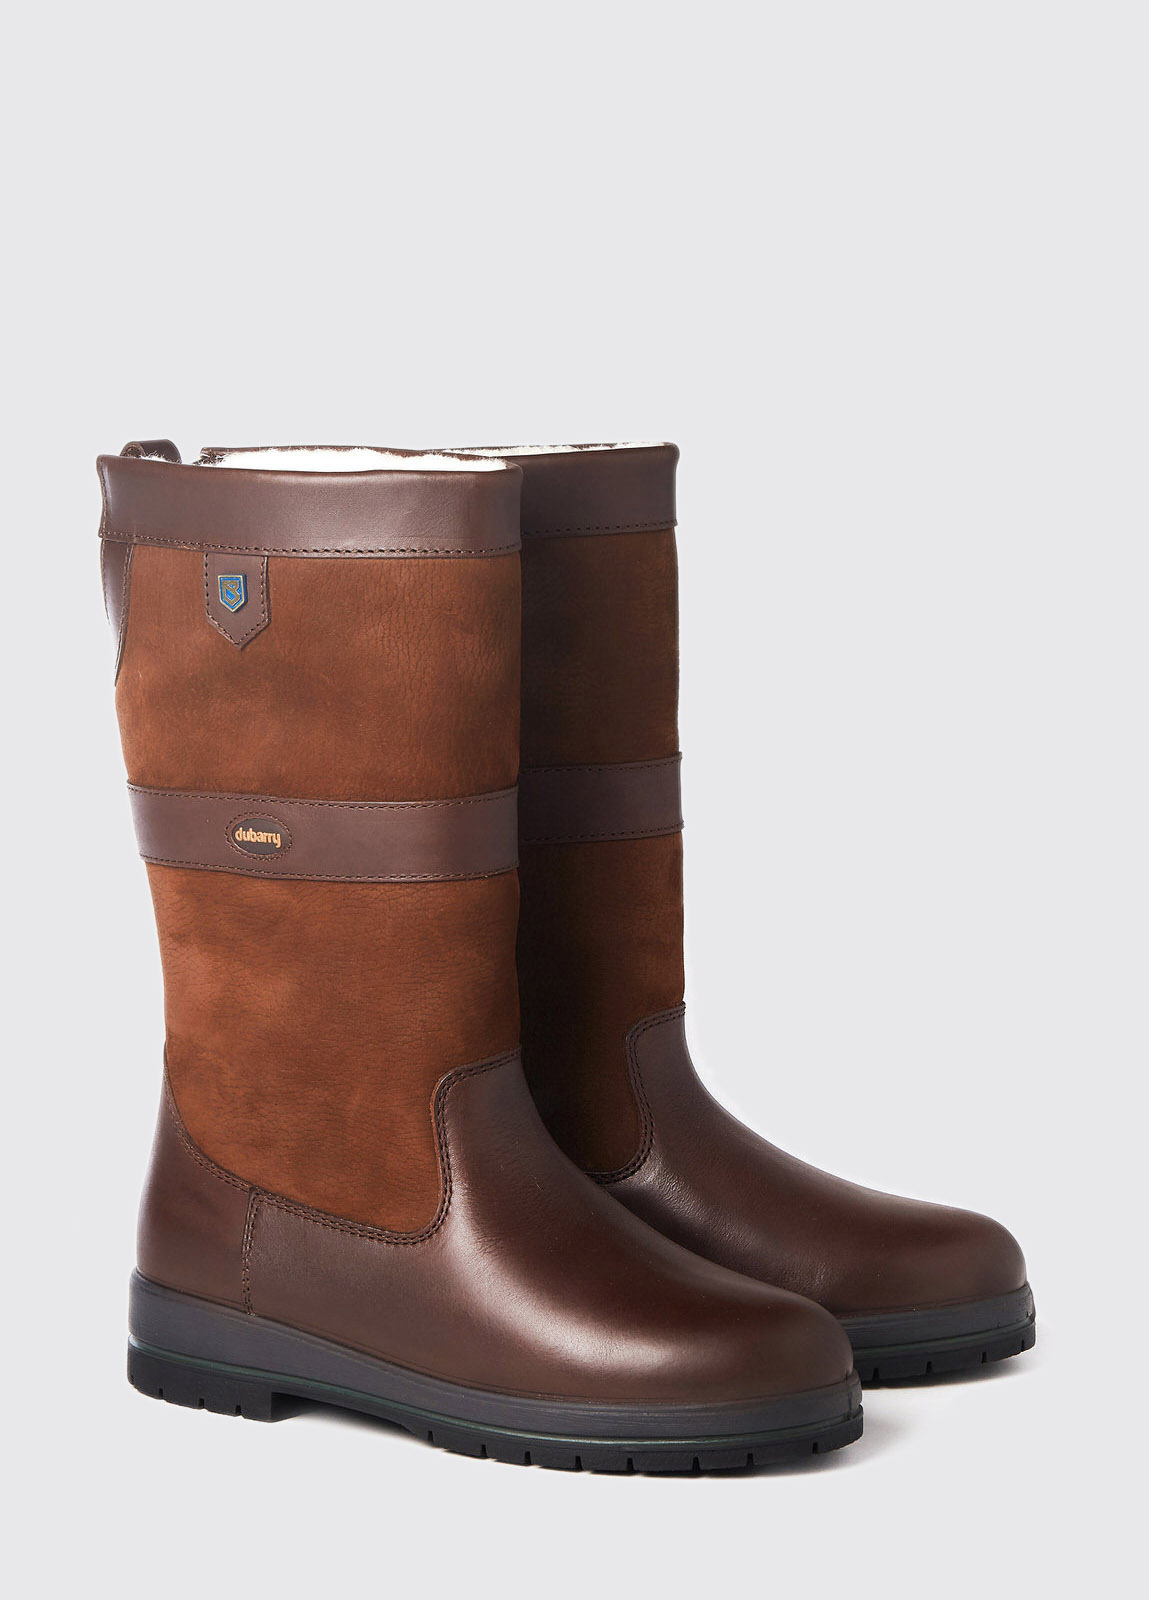 Donegal Damen Winterstiefel - Walnut